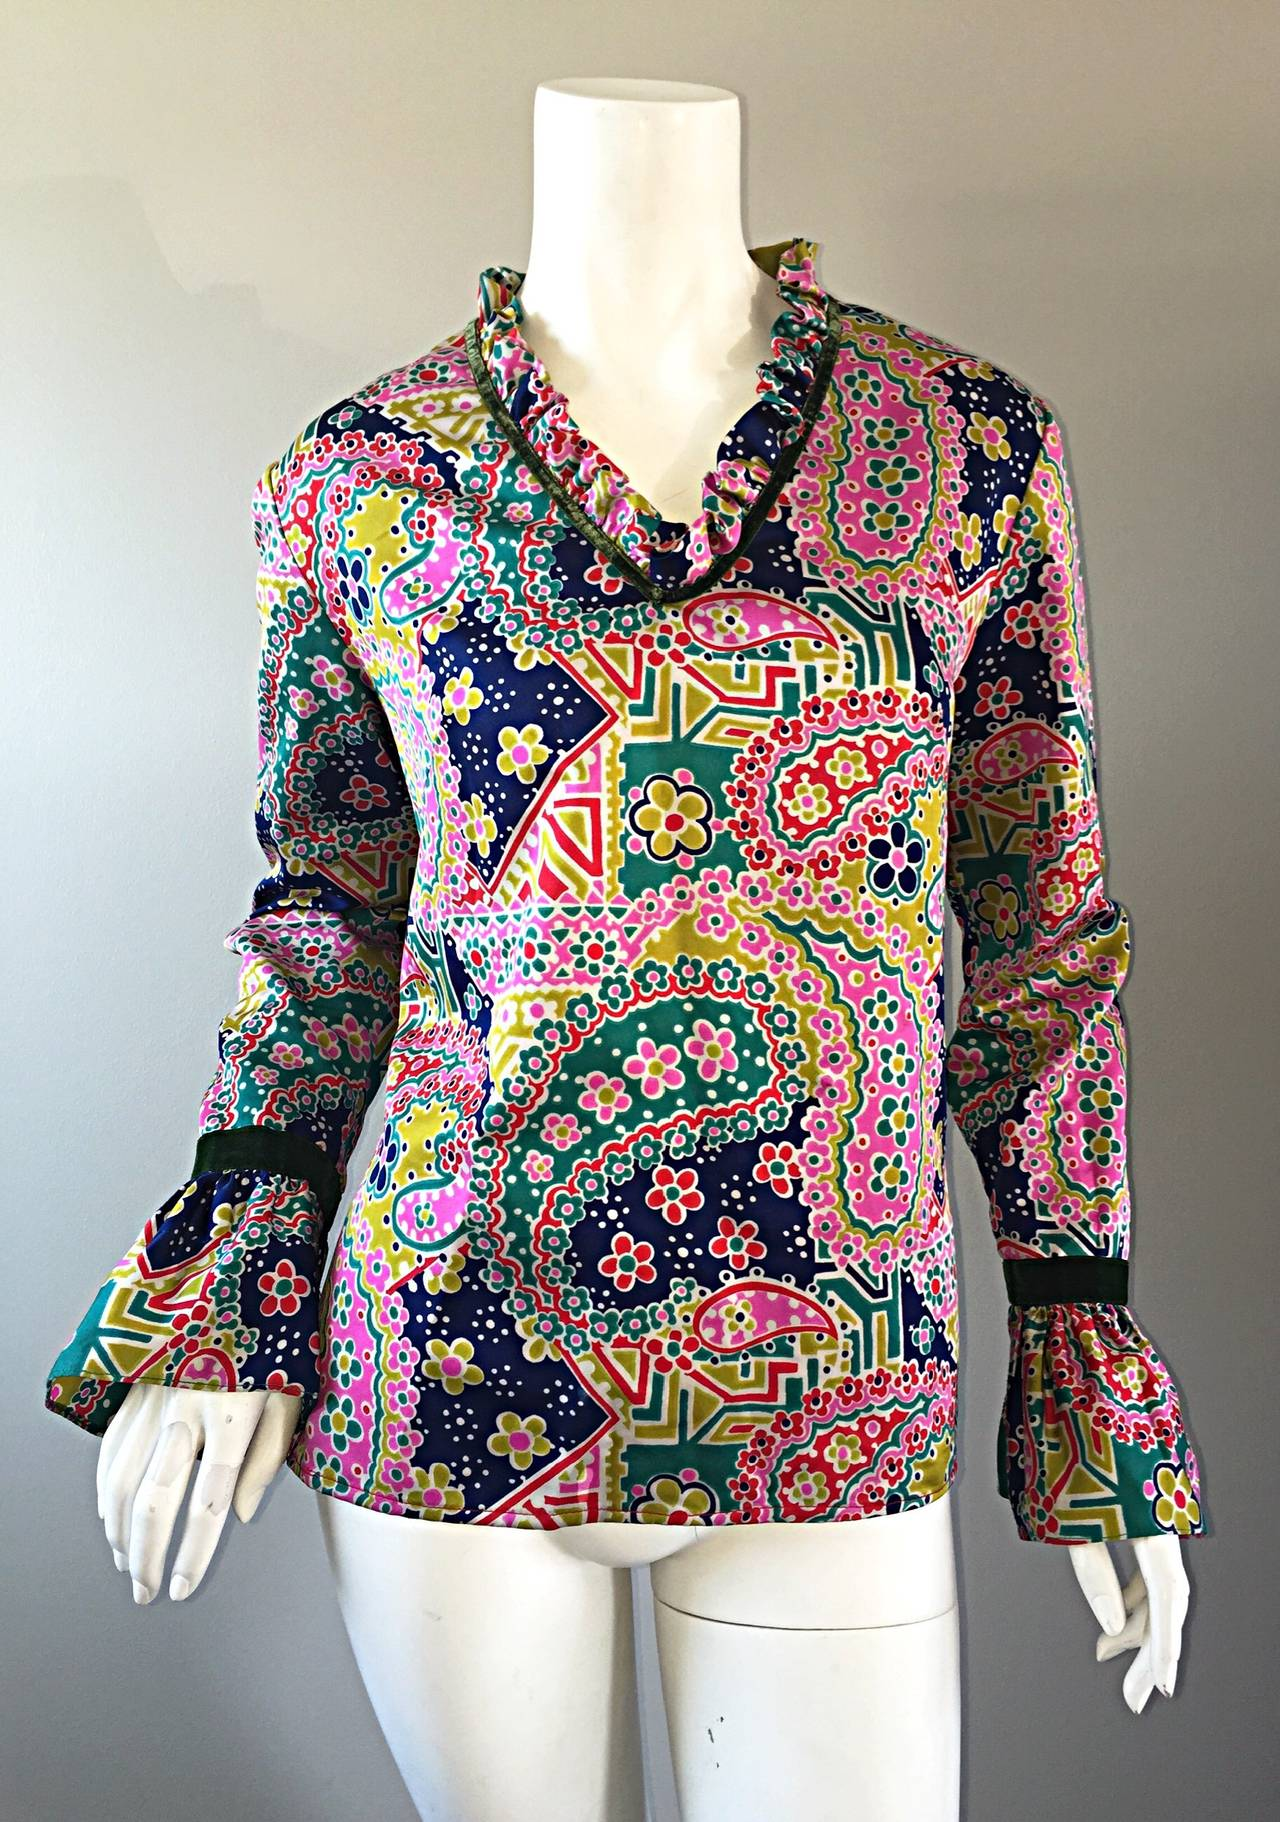 Awesome vintage 1970s top! Features colorful prints of paisley and florals throughout. Wonderful poet's sleeve, with green velvet ribbon detail at cuffs and neck. Ruffles at the neck. Hidden zipper up the back. Looks great alone, or perfect with a